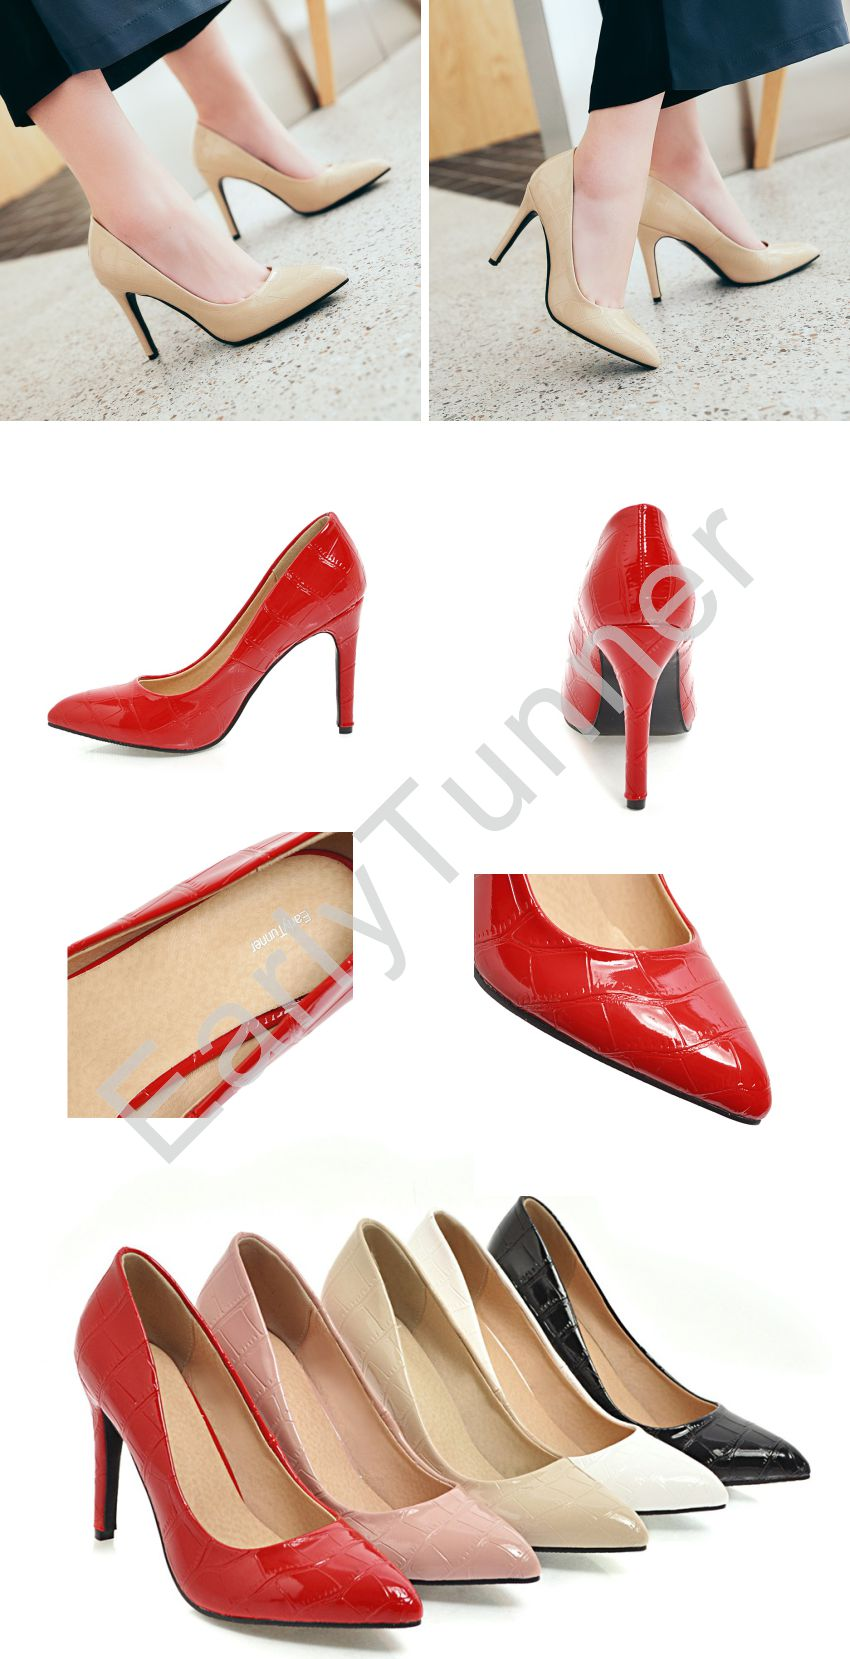 Brand New Hot Fashion Pink Red Women Formal Pumps Comfortable Stiletto High Heels Lady Casual Shoes EH1582 Plus Big Size 10 43